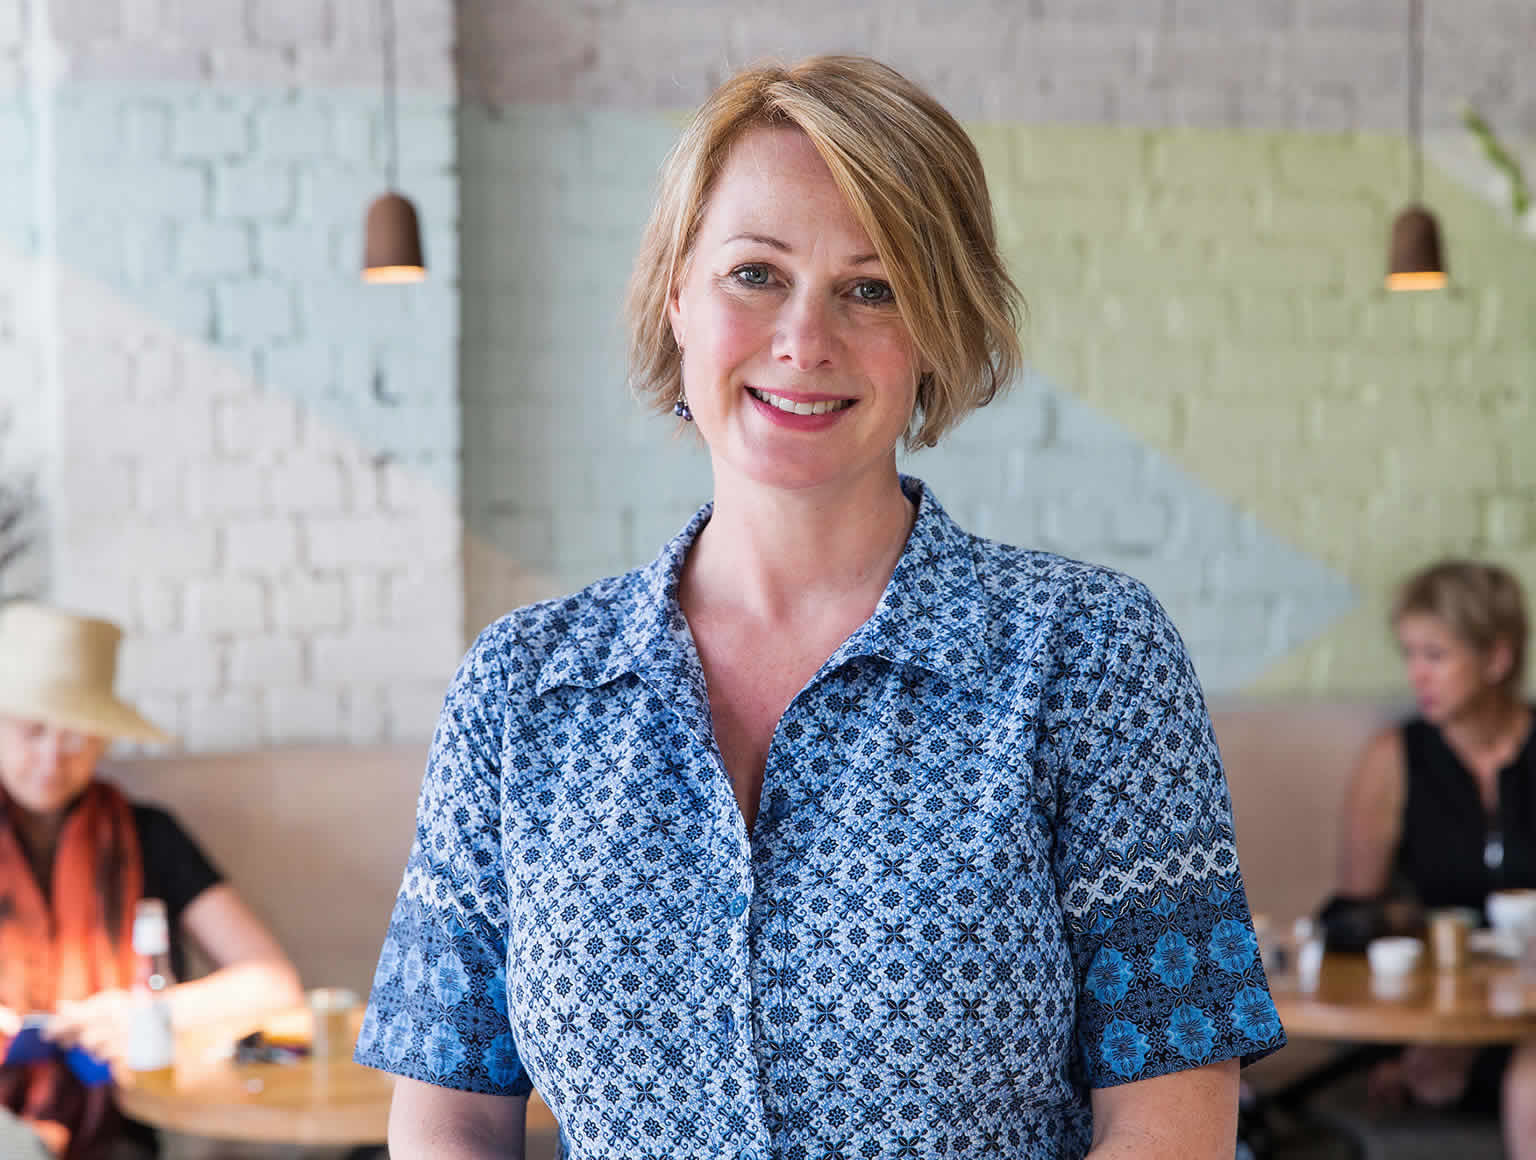 A smiling Jodi Clarke stands in a café in tables of diners on either side in background.